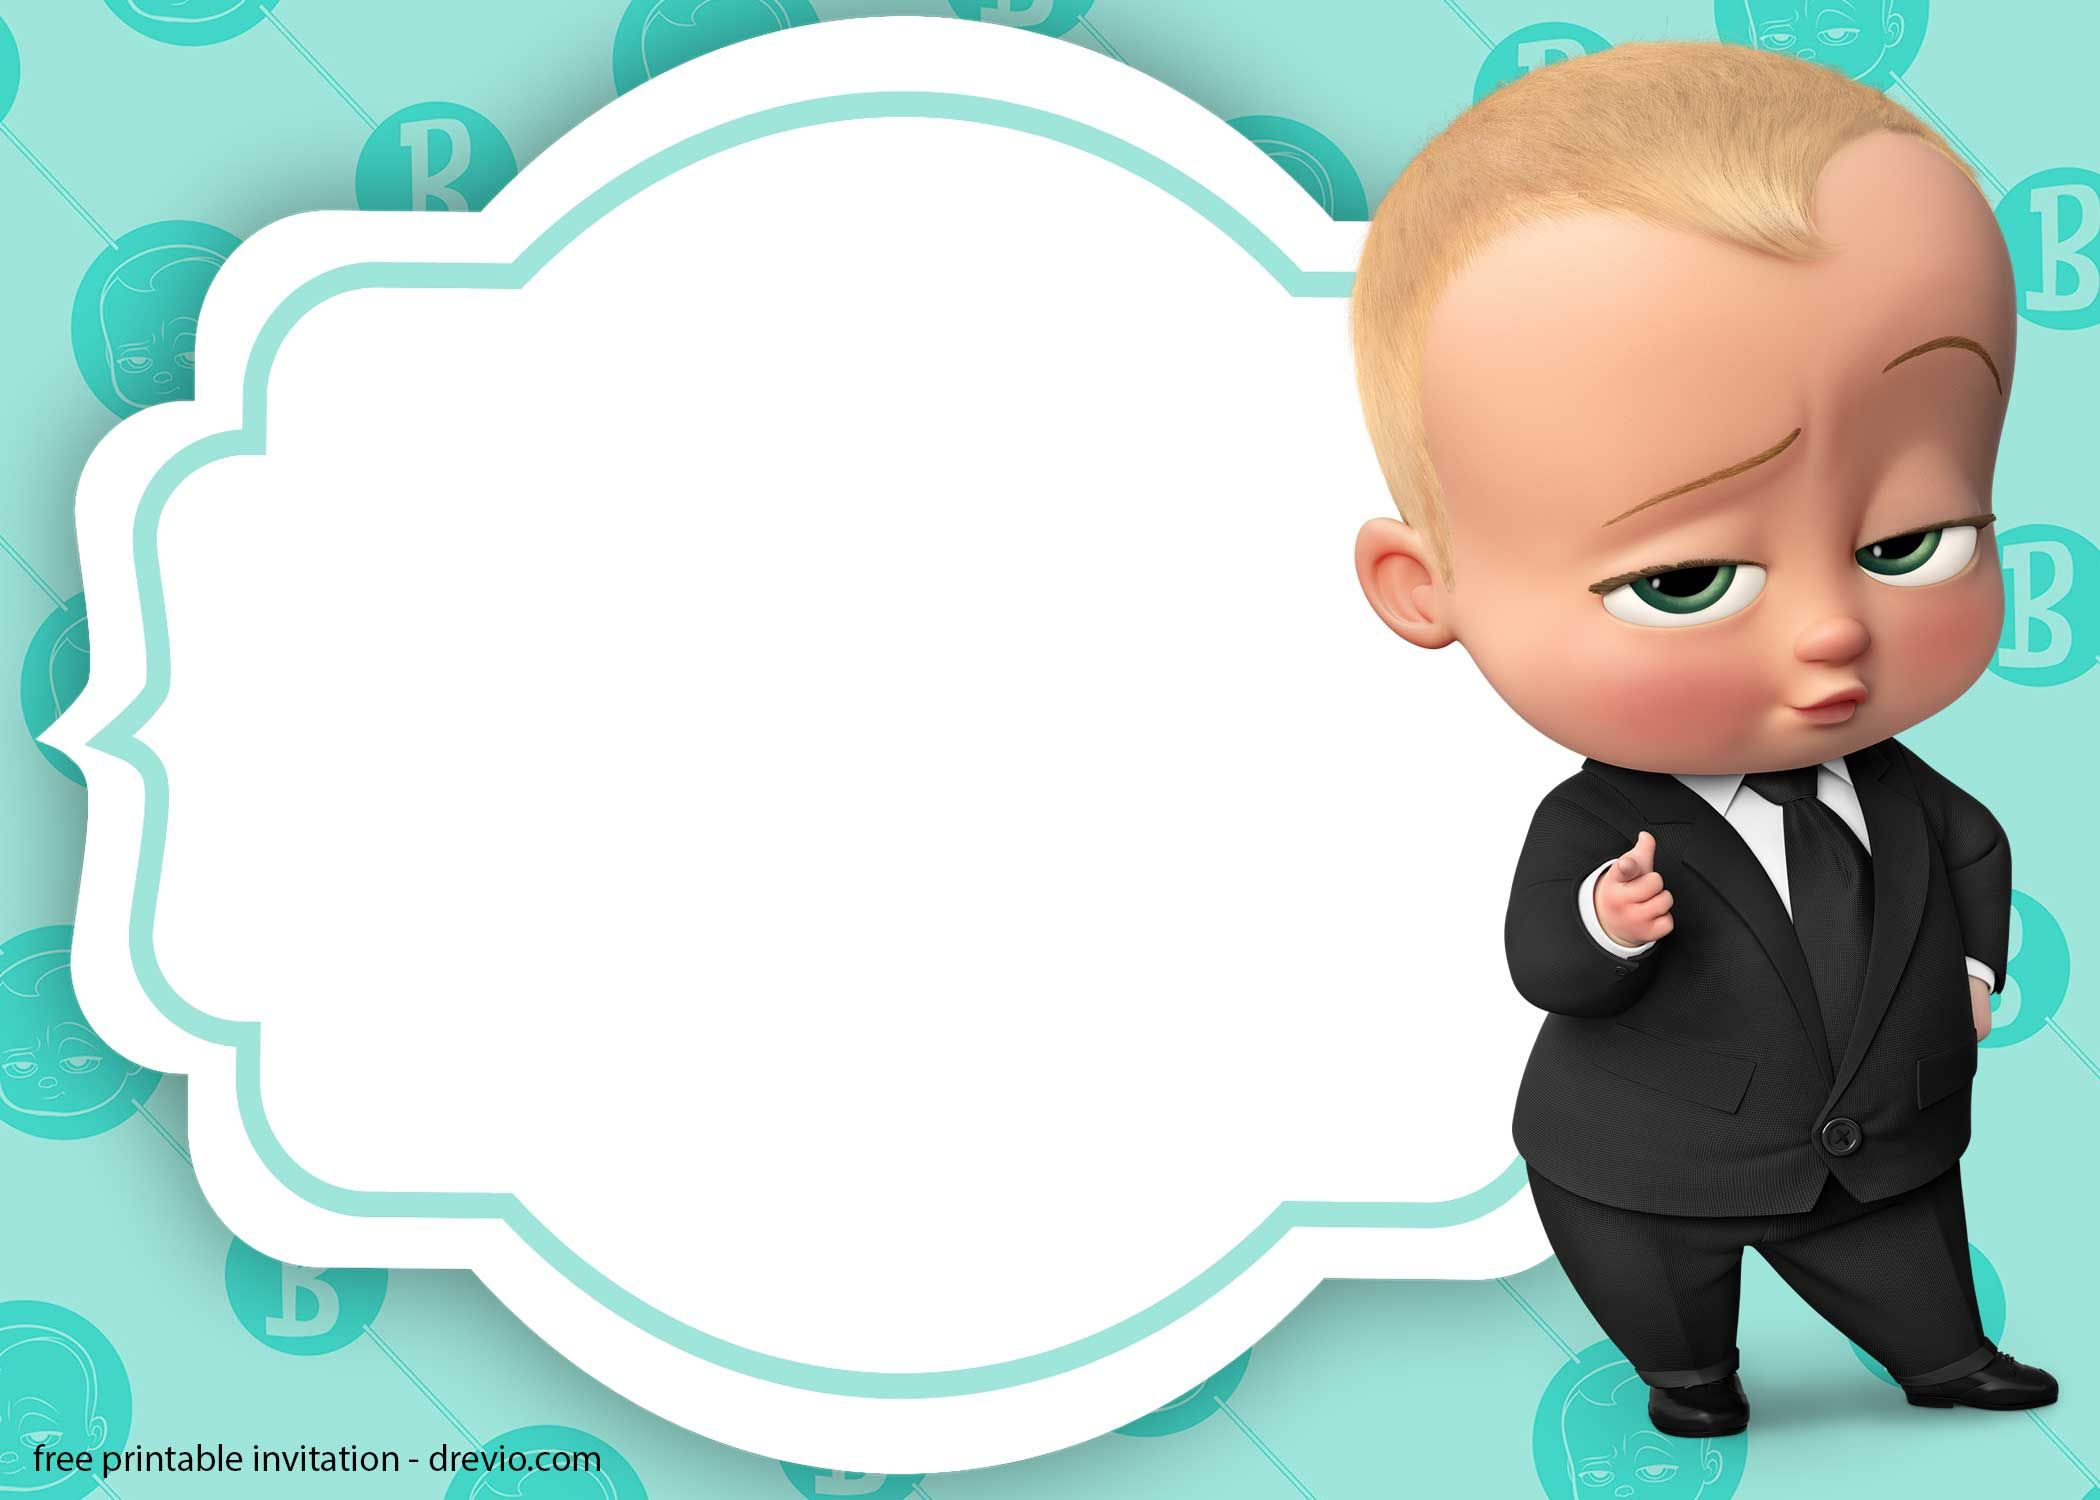 Baby Boss Invitation Template For Your Adorable Little Boss Bebe